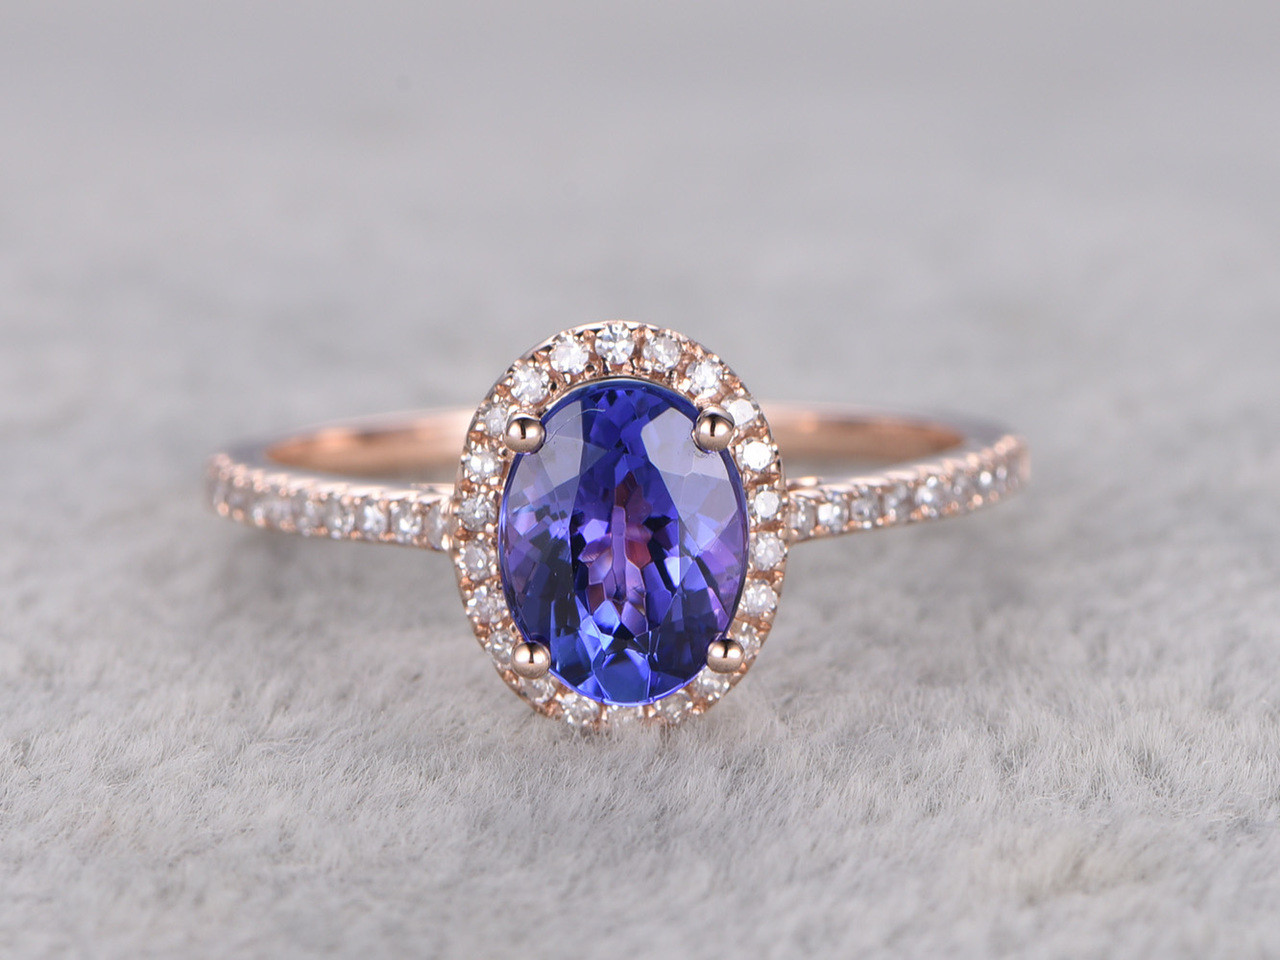 wedding anniversary cut rings il pave engagement gold cocktail tanzanite unique micro white promise ring diamond oval